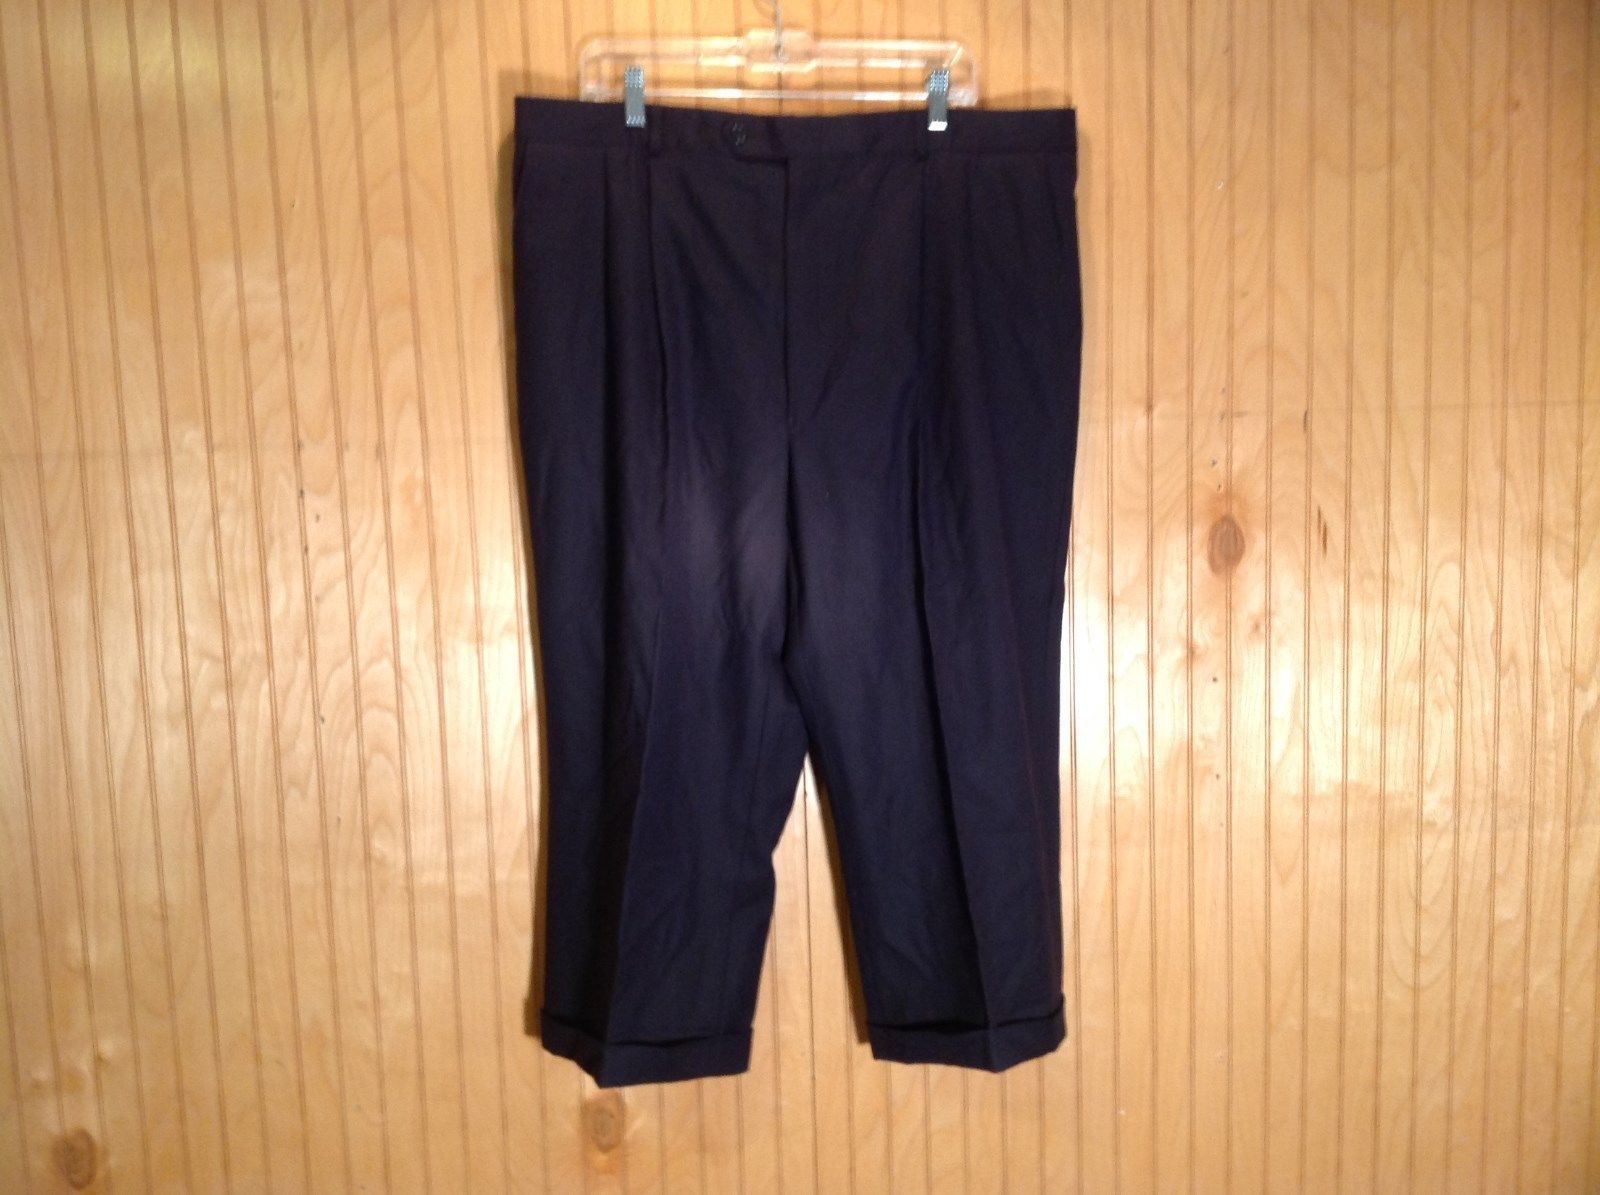 Size 40 Black Pleated Dress Pants Tags Removed Measurements Below